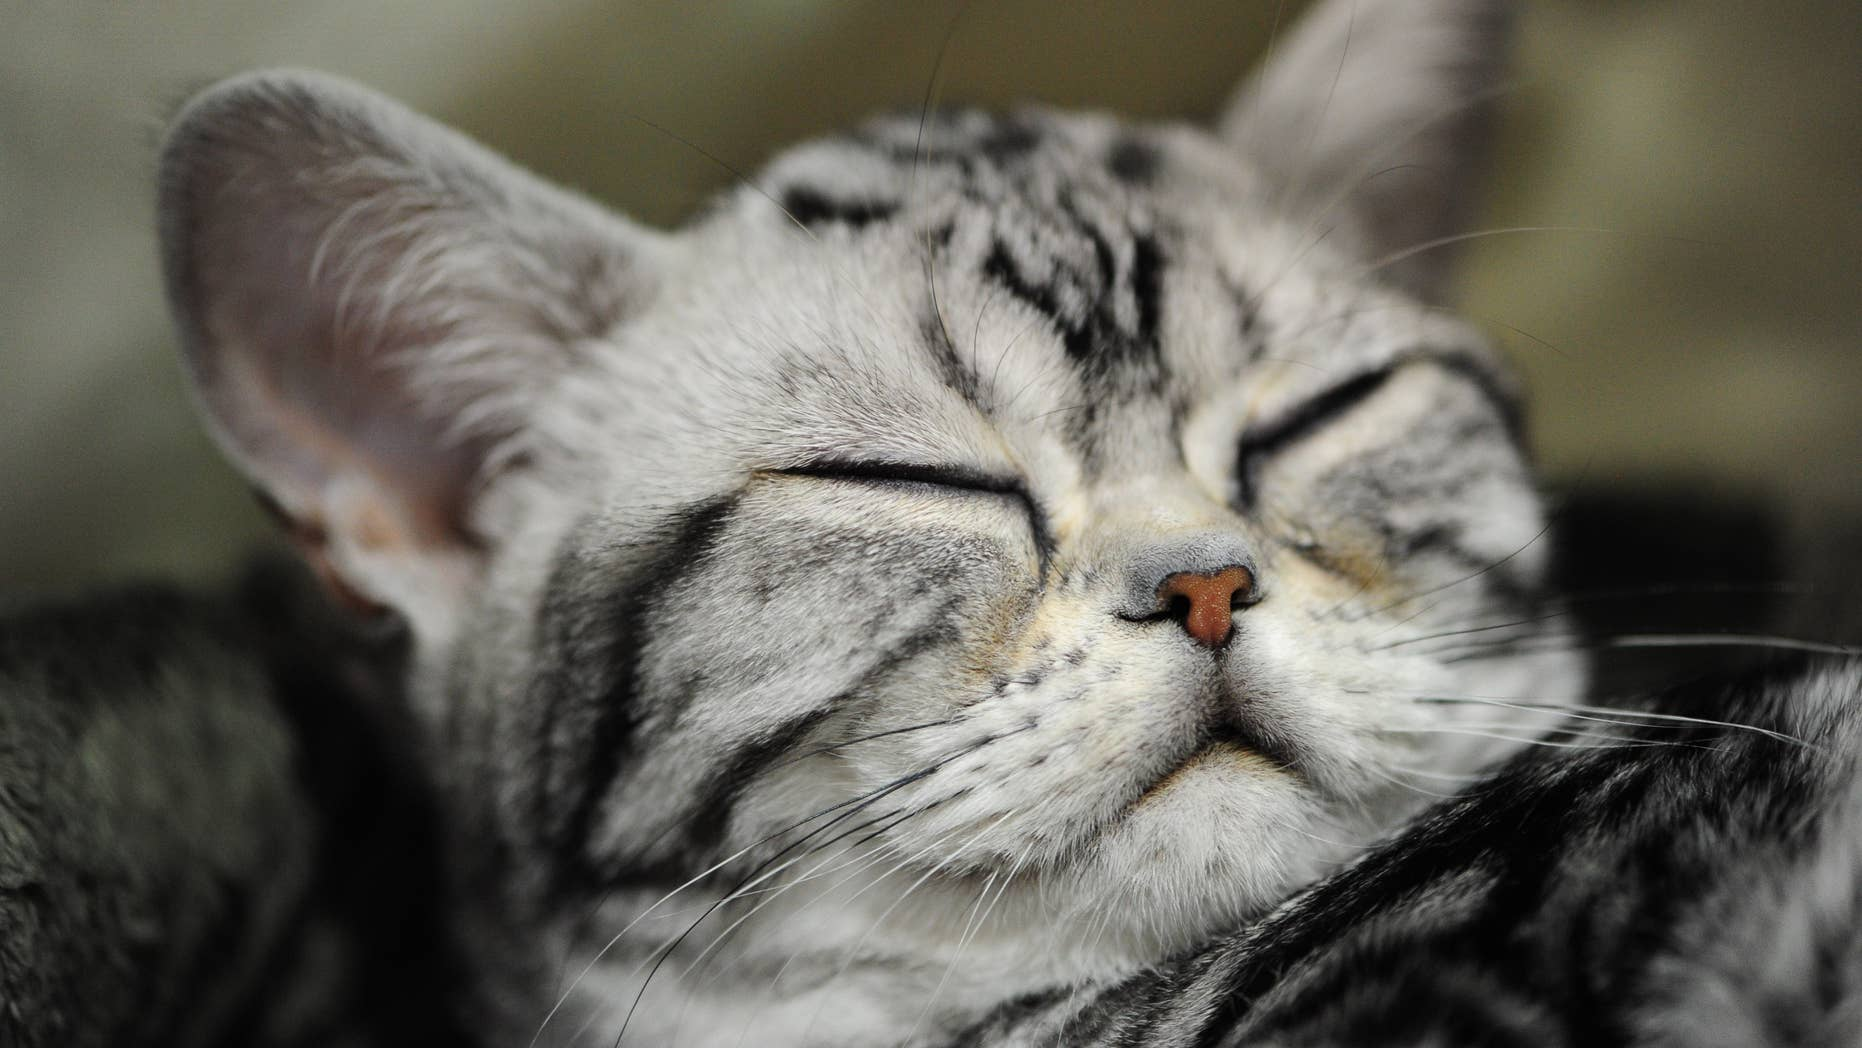 Macy, a four-month-old American Shorthair Silver Tabby kitten gets some rest at the 51st annual Oregon Cats Classic at the Expo Center in Portland, Ore., on August 17, 2014. (Photo by Alex Milan Tracy/Sipa USA)